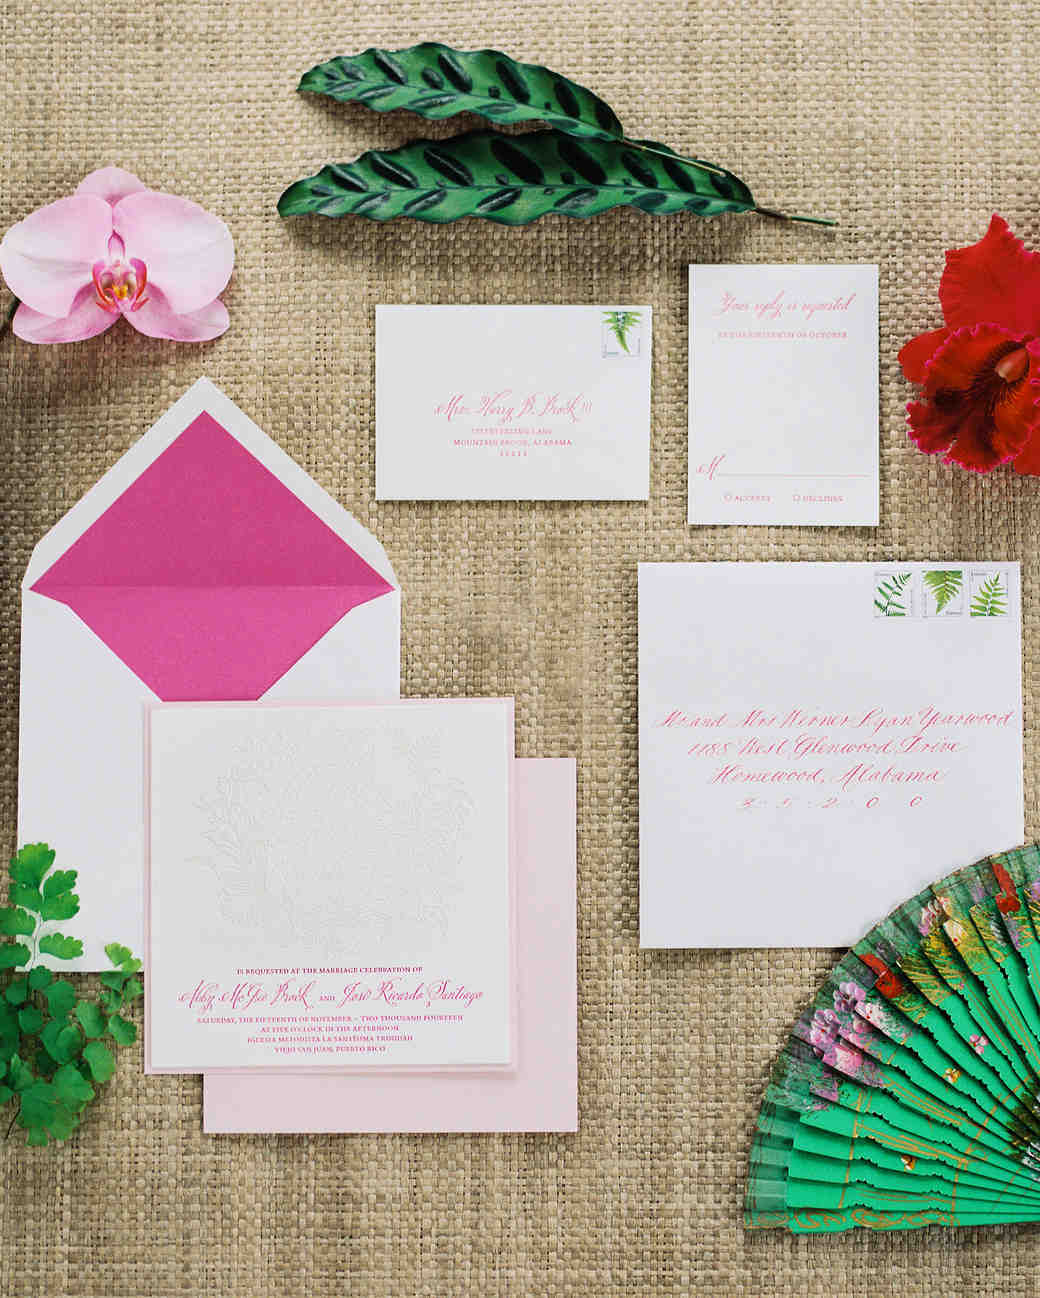 abby-jose-wedding-invite-094-s112118-0815.jpg